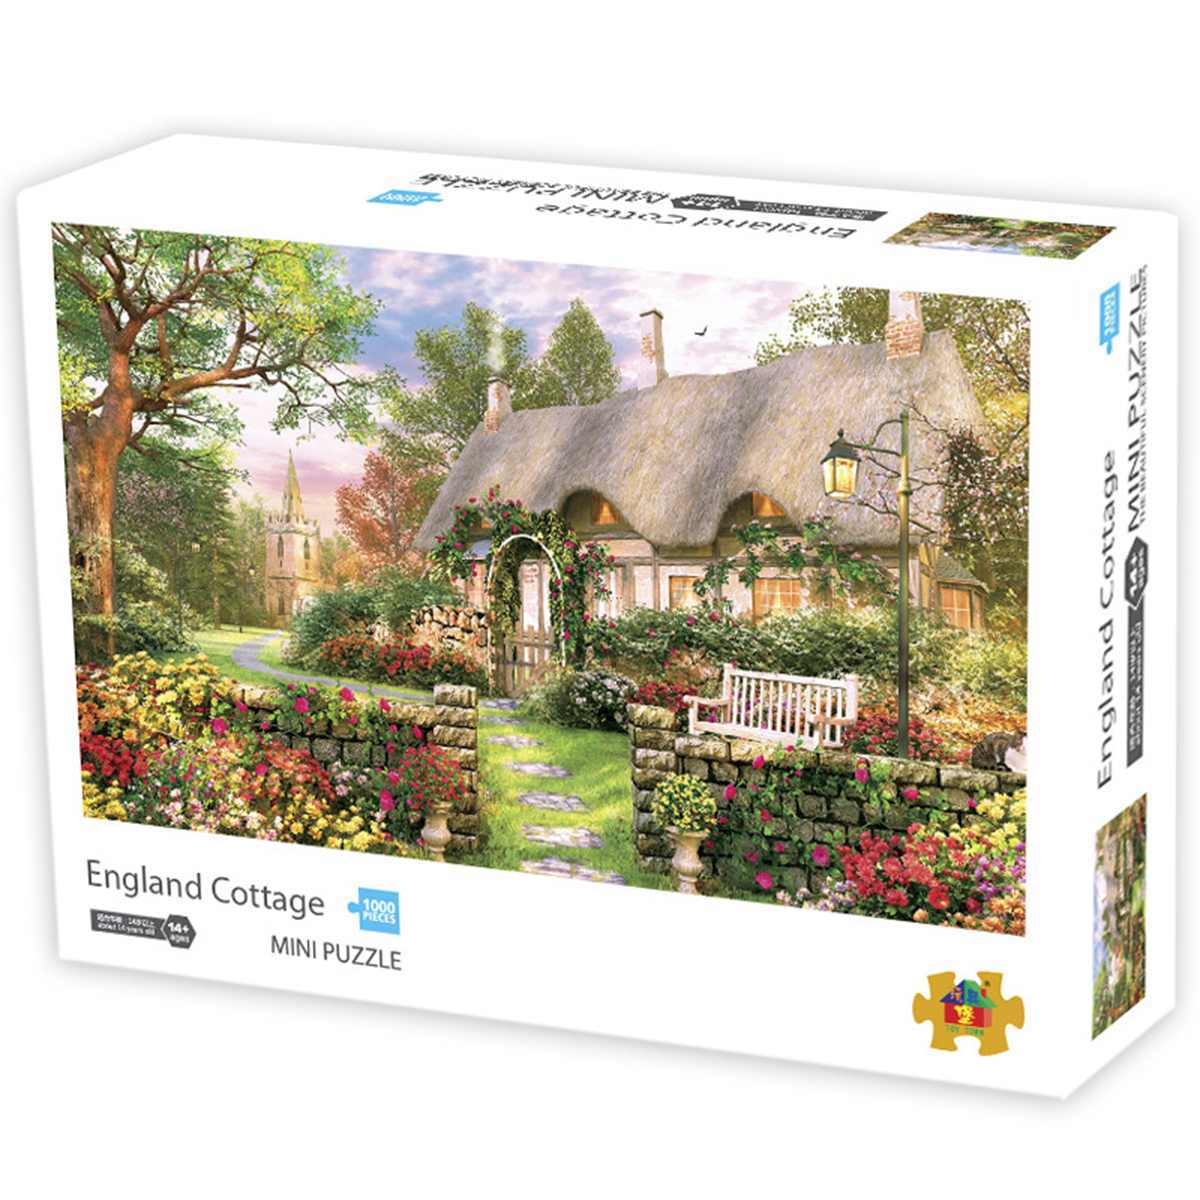 1000 Piece Jigsaw Puzzle for Kids and Adults in Carton Box Mini Polar Impression Puzzle